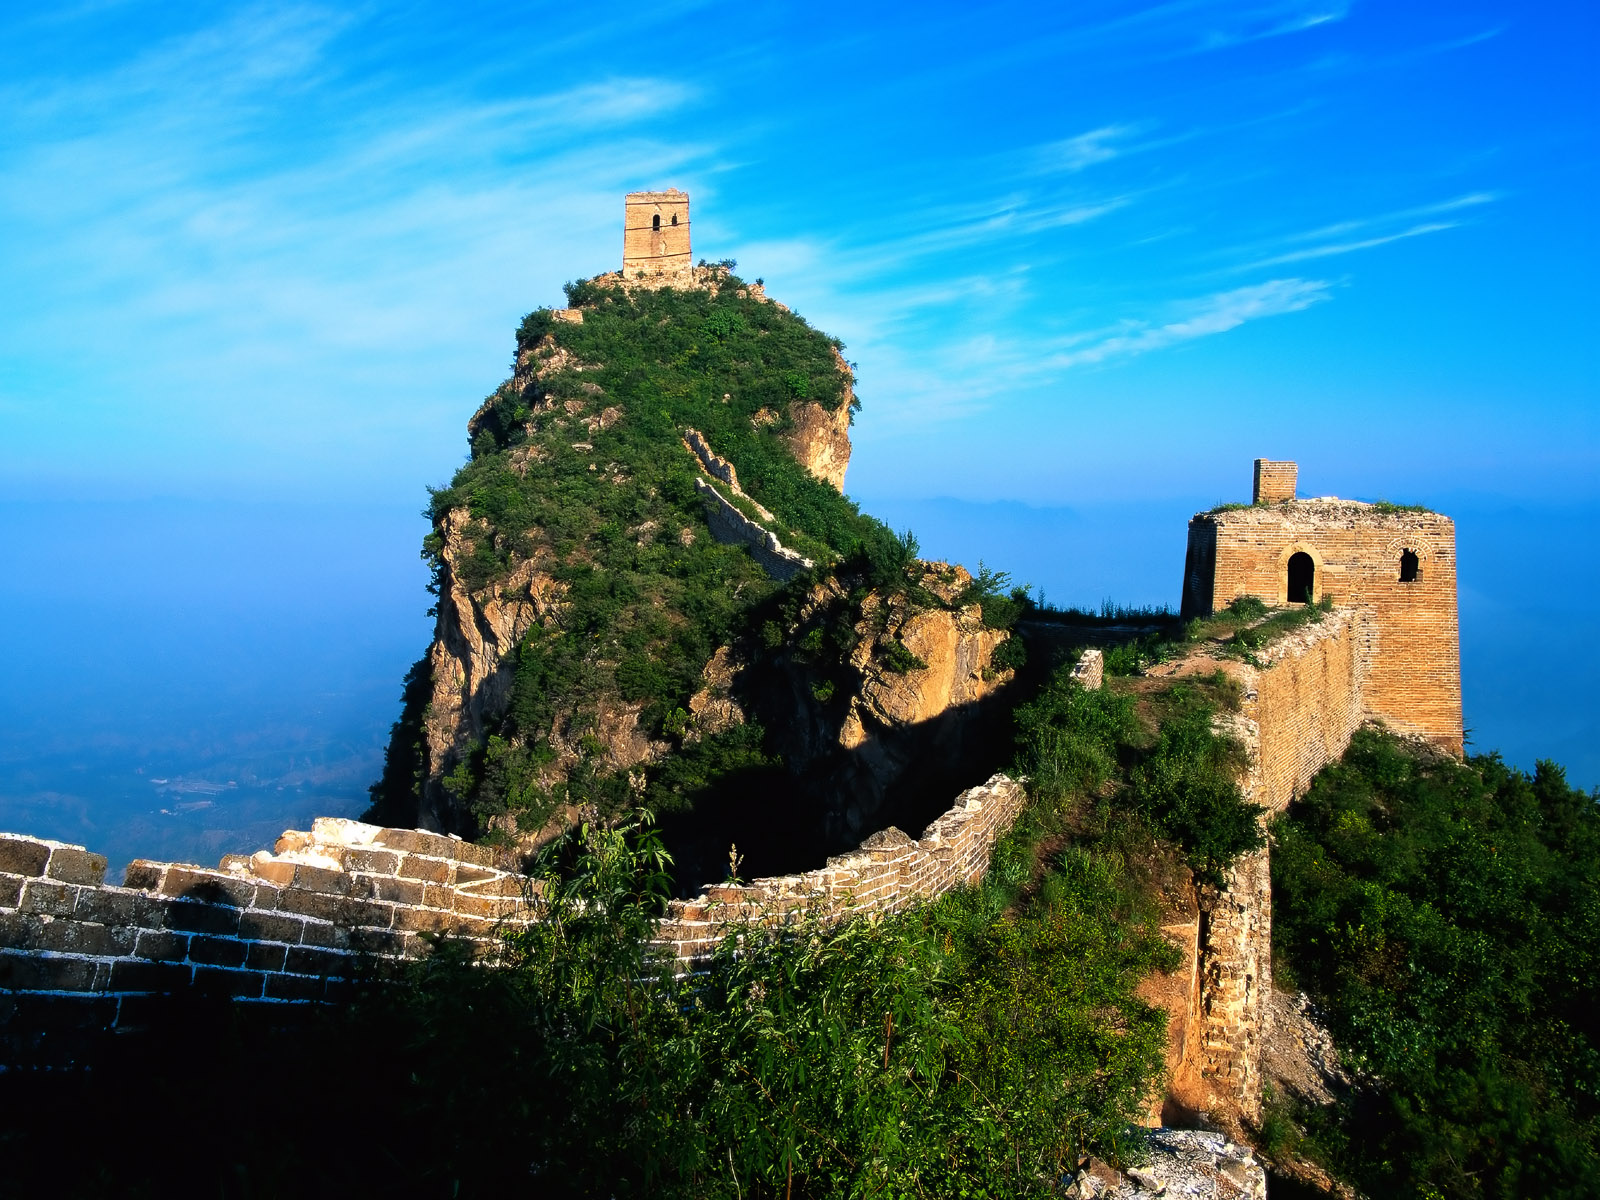 Download 20 Great Wall of China HD Wallpapers 16001200 1600x1200